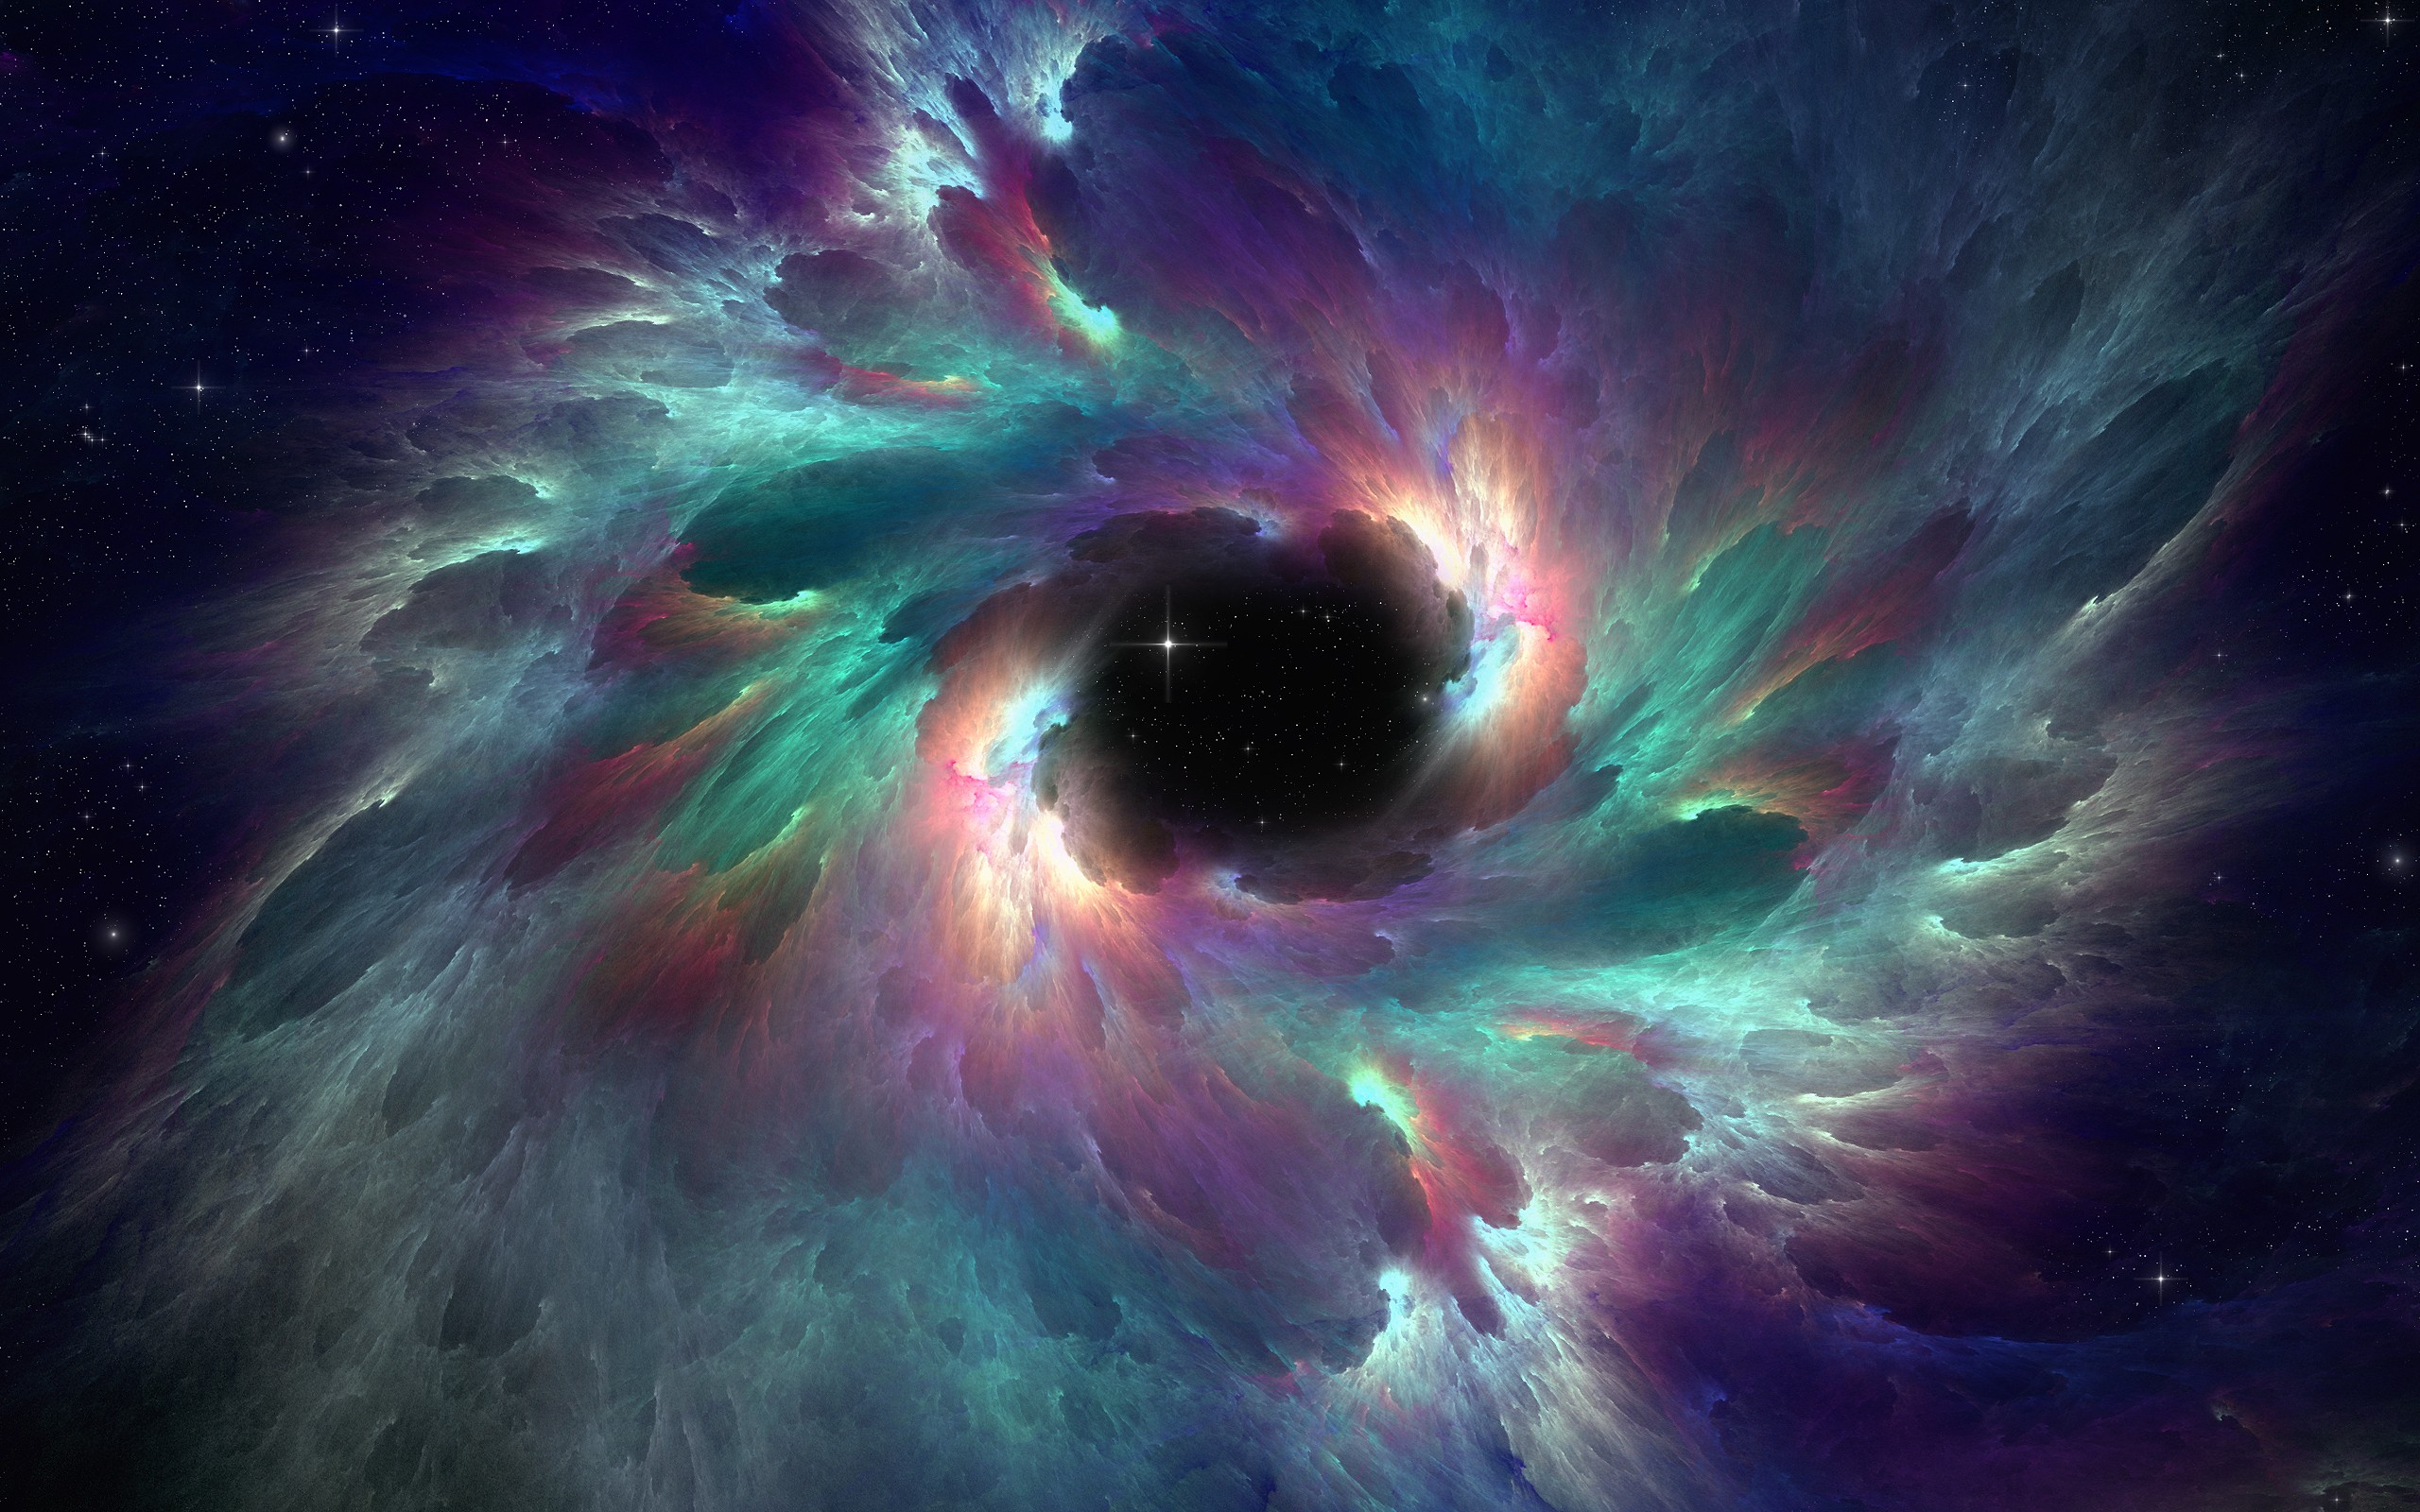 Outer space vortex wallpapers outer space vortex stock for Outer space design wallpaper